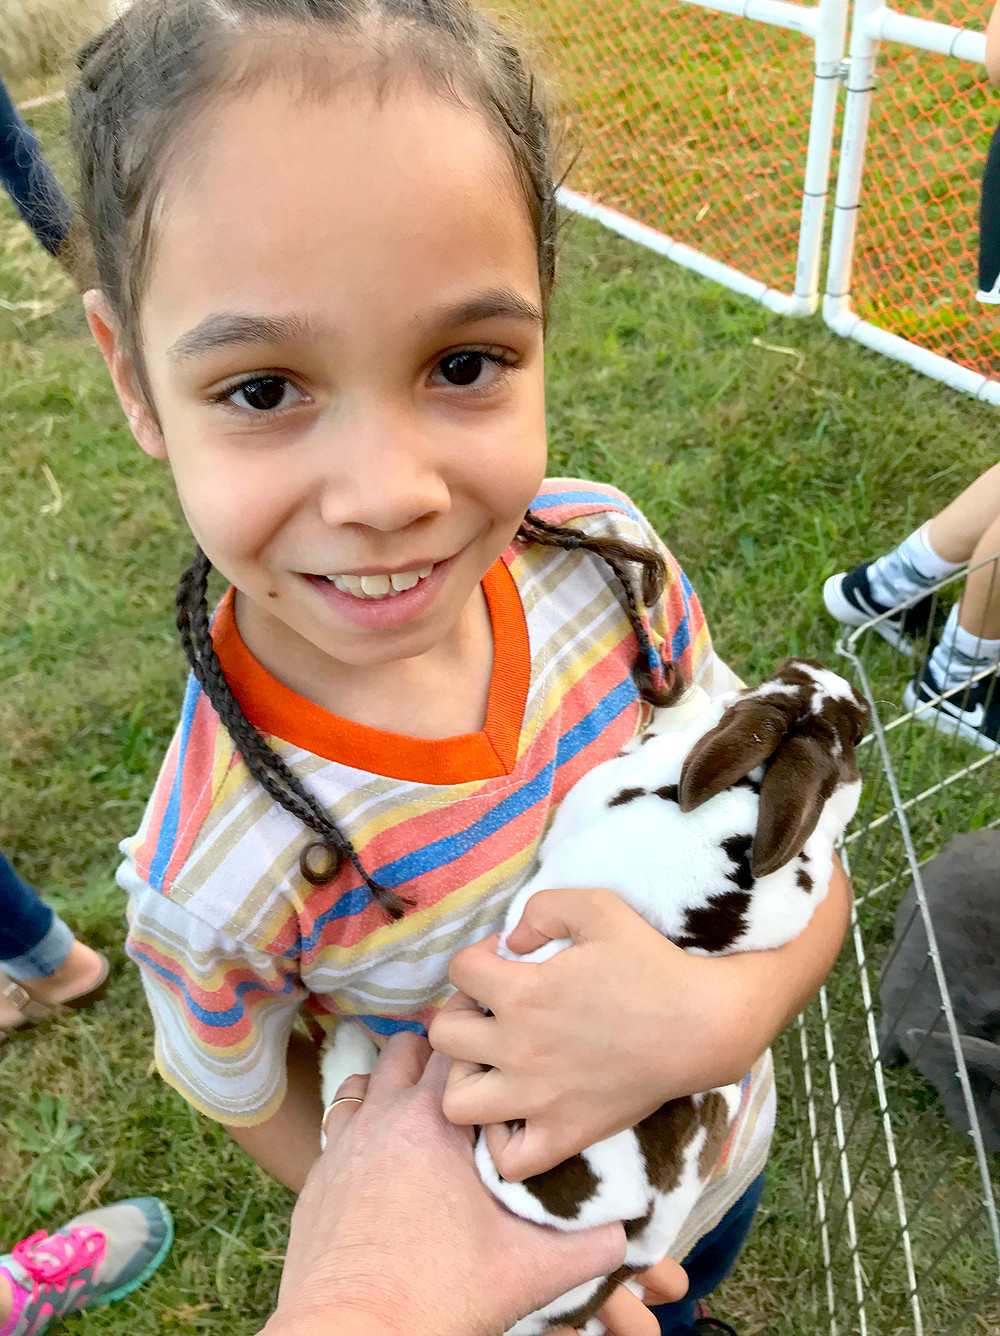 LASHAWN HARTUNG cuddles a bunny rabbit from the Little Country Farm and Petting Zoo during Blythe-Bower Elementary School's recent fall festival.